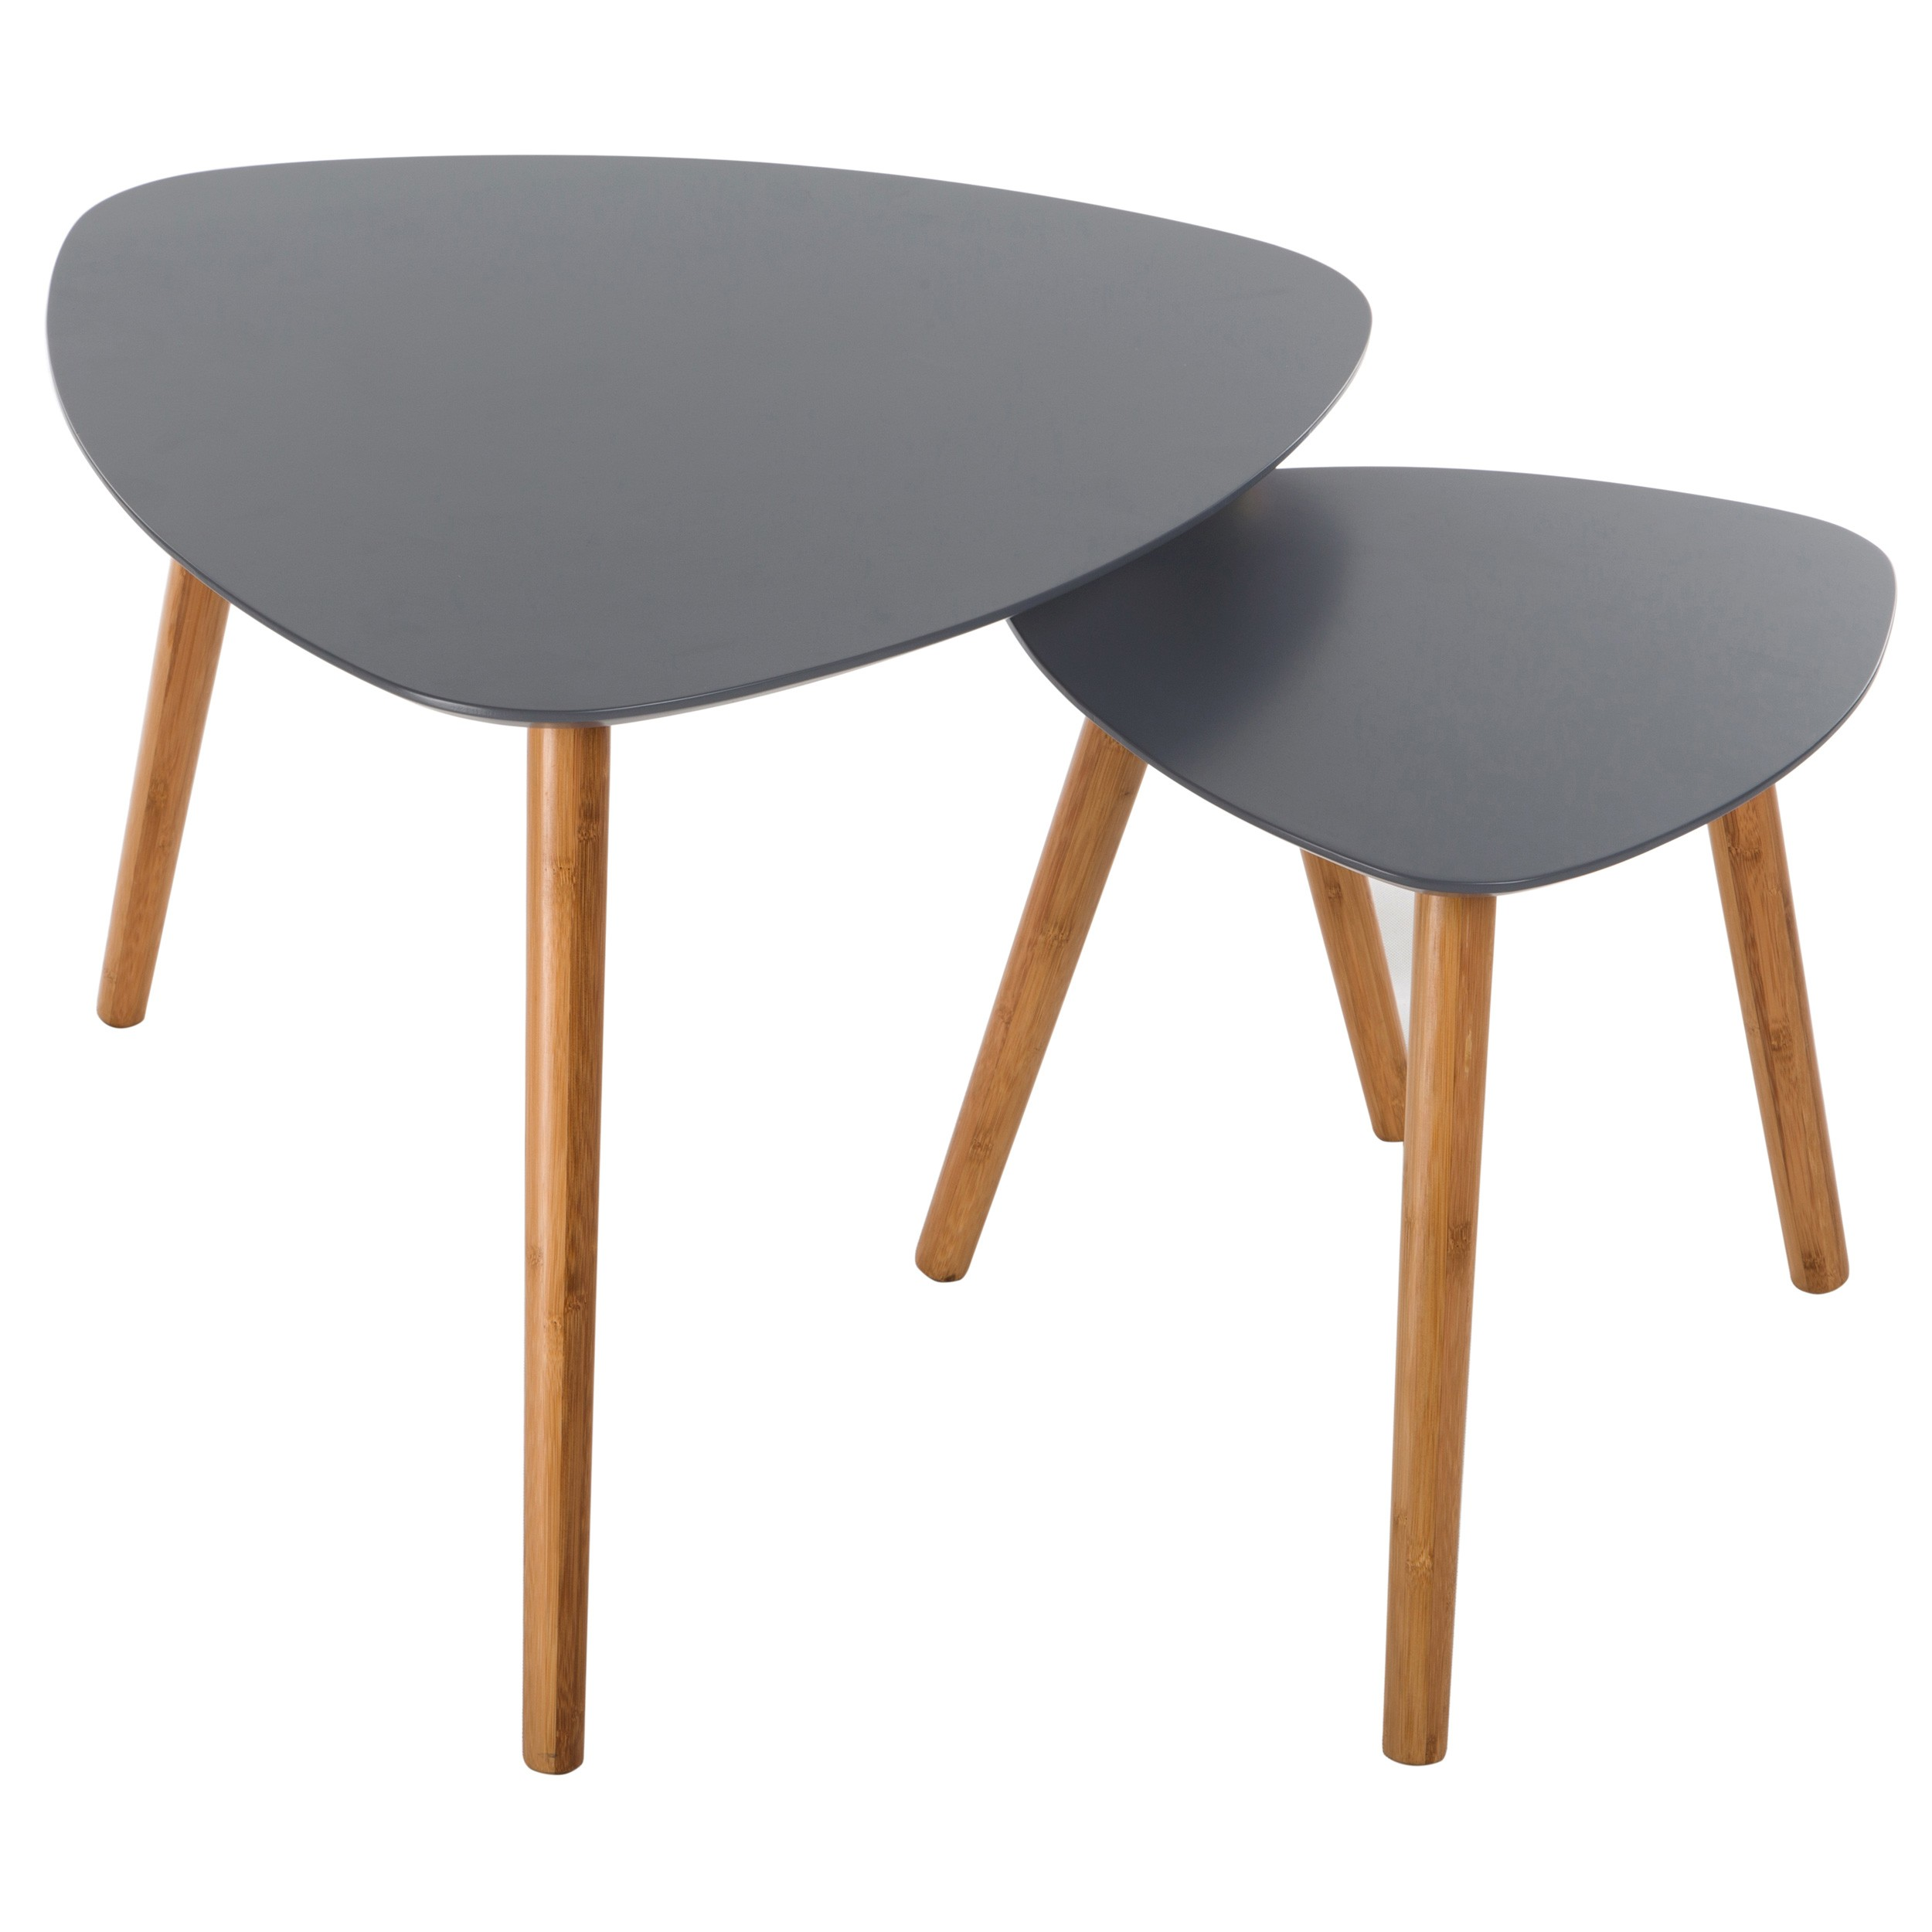 table basse scandinave grise lot de 2 commandez nos tables basses scandinaves grises lot de. Black Bedroom Furniture Sets. Home Design Ideas